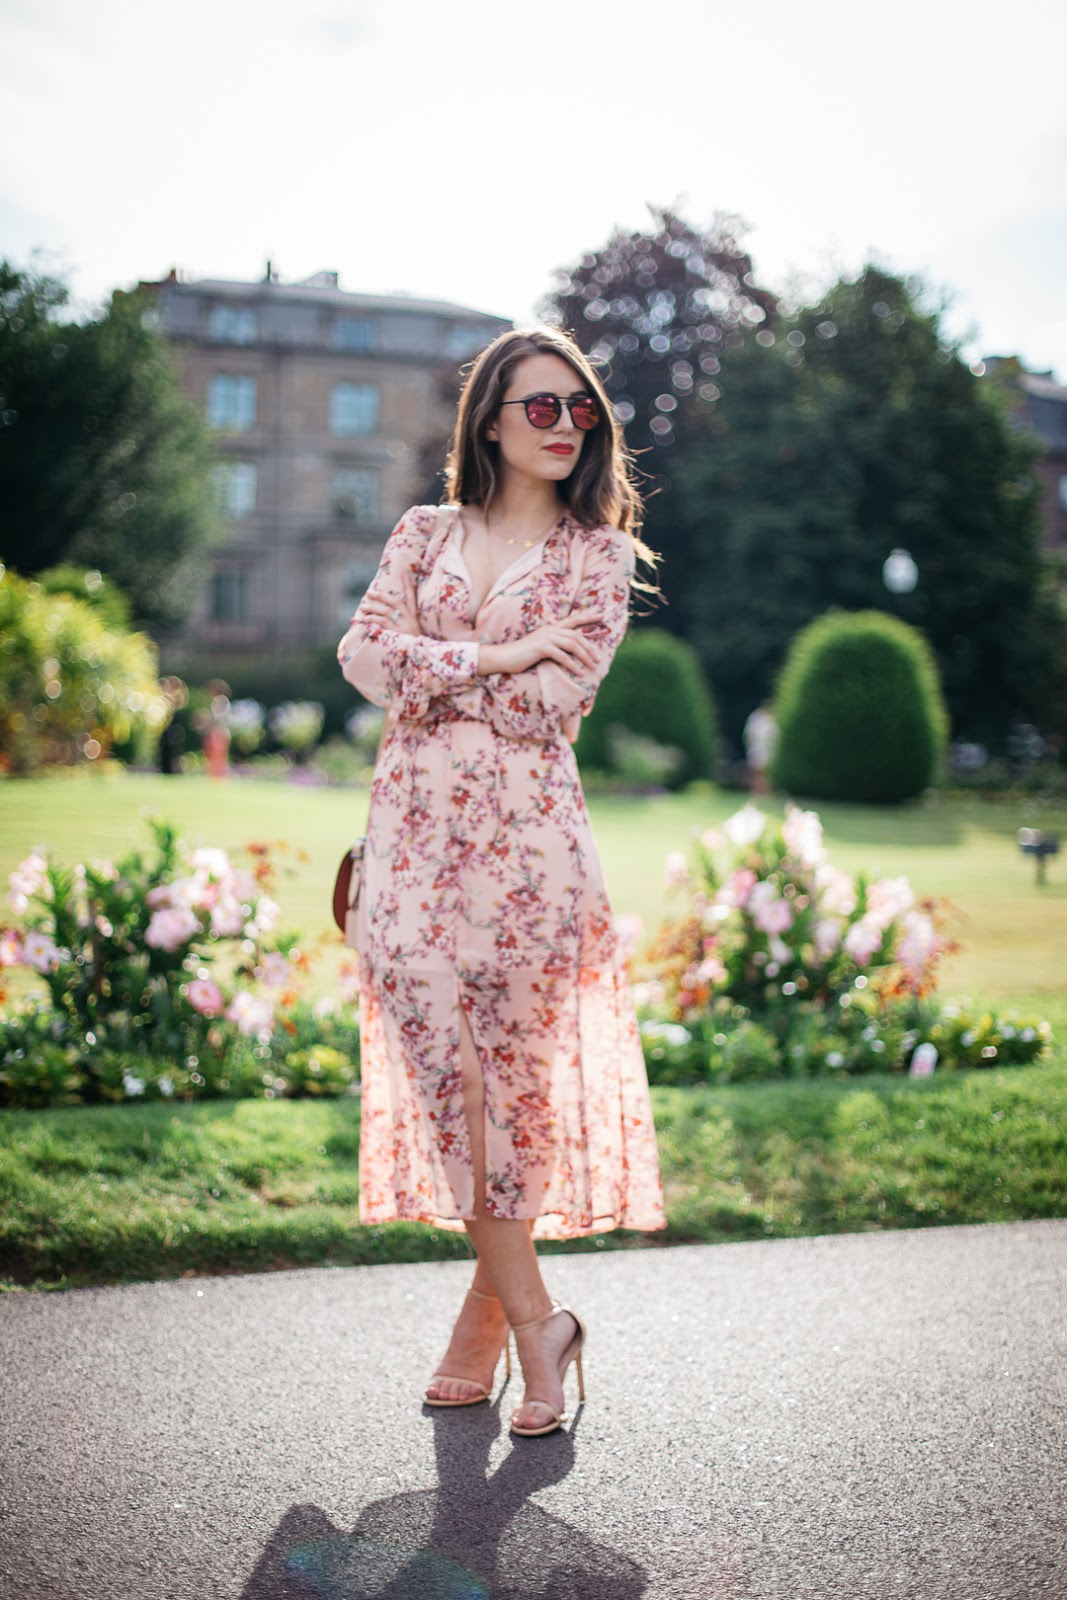 Short? You can still wear midi and maxi dresses! Just pair your favorite frock with Stuart Weitzman's chic nudistrong sandals which are flattering and chic